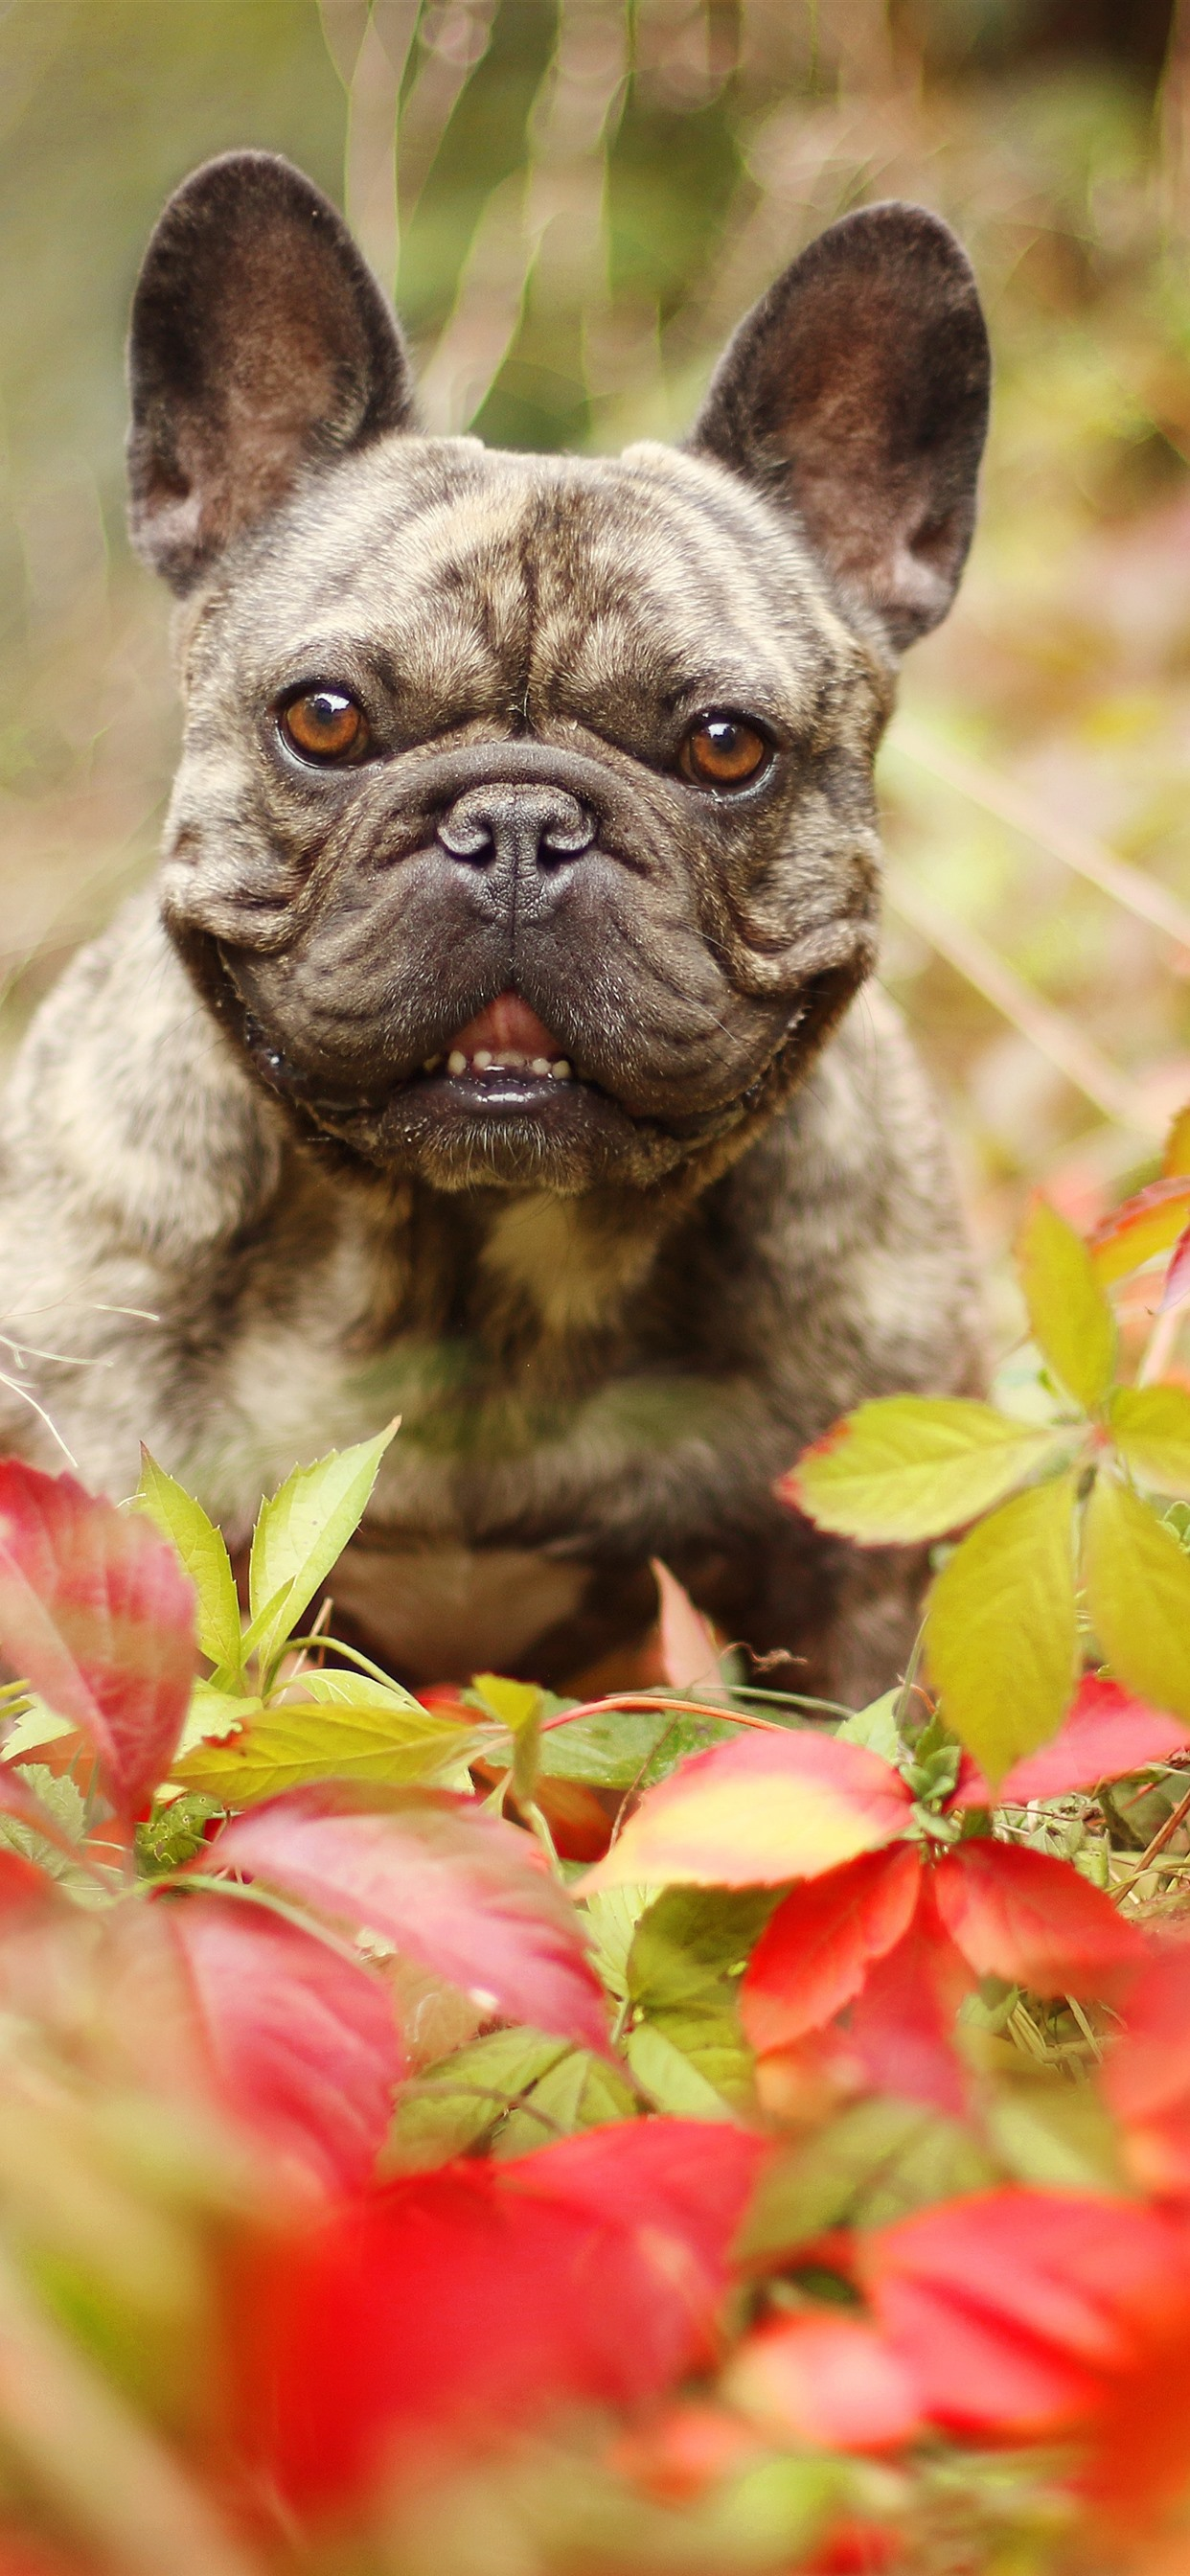 French Bulldog Leaves Autumn 1242x2688 Iphone Xs Max